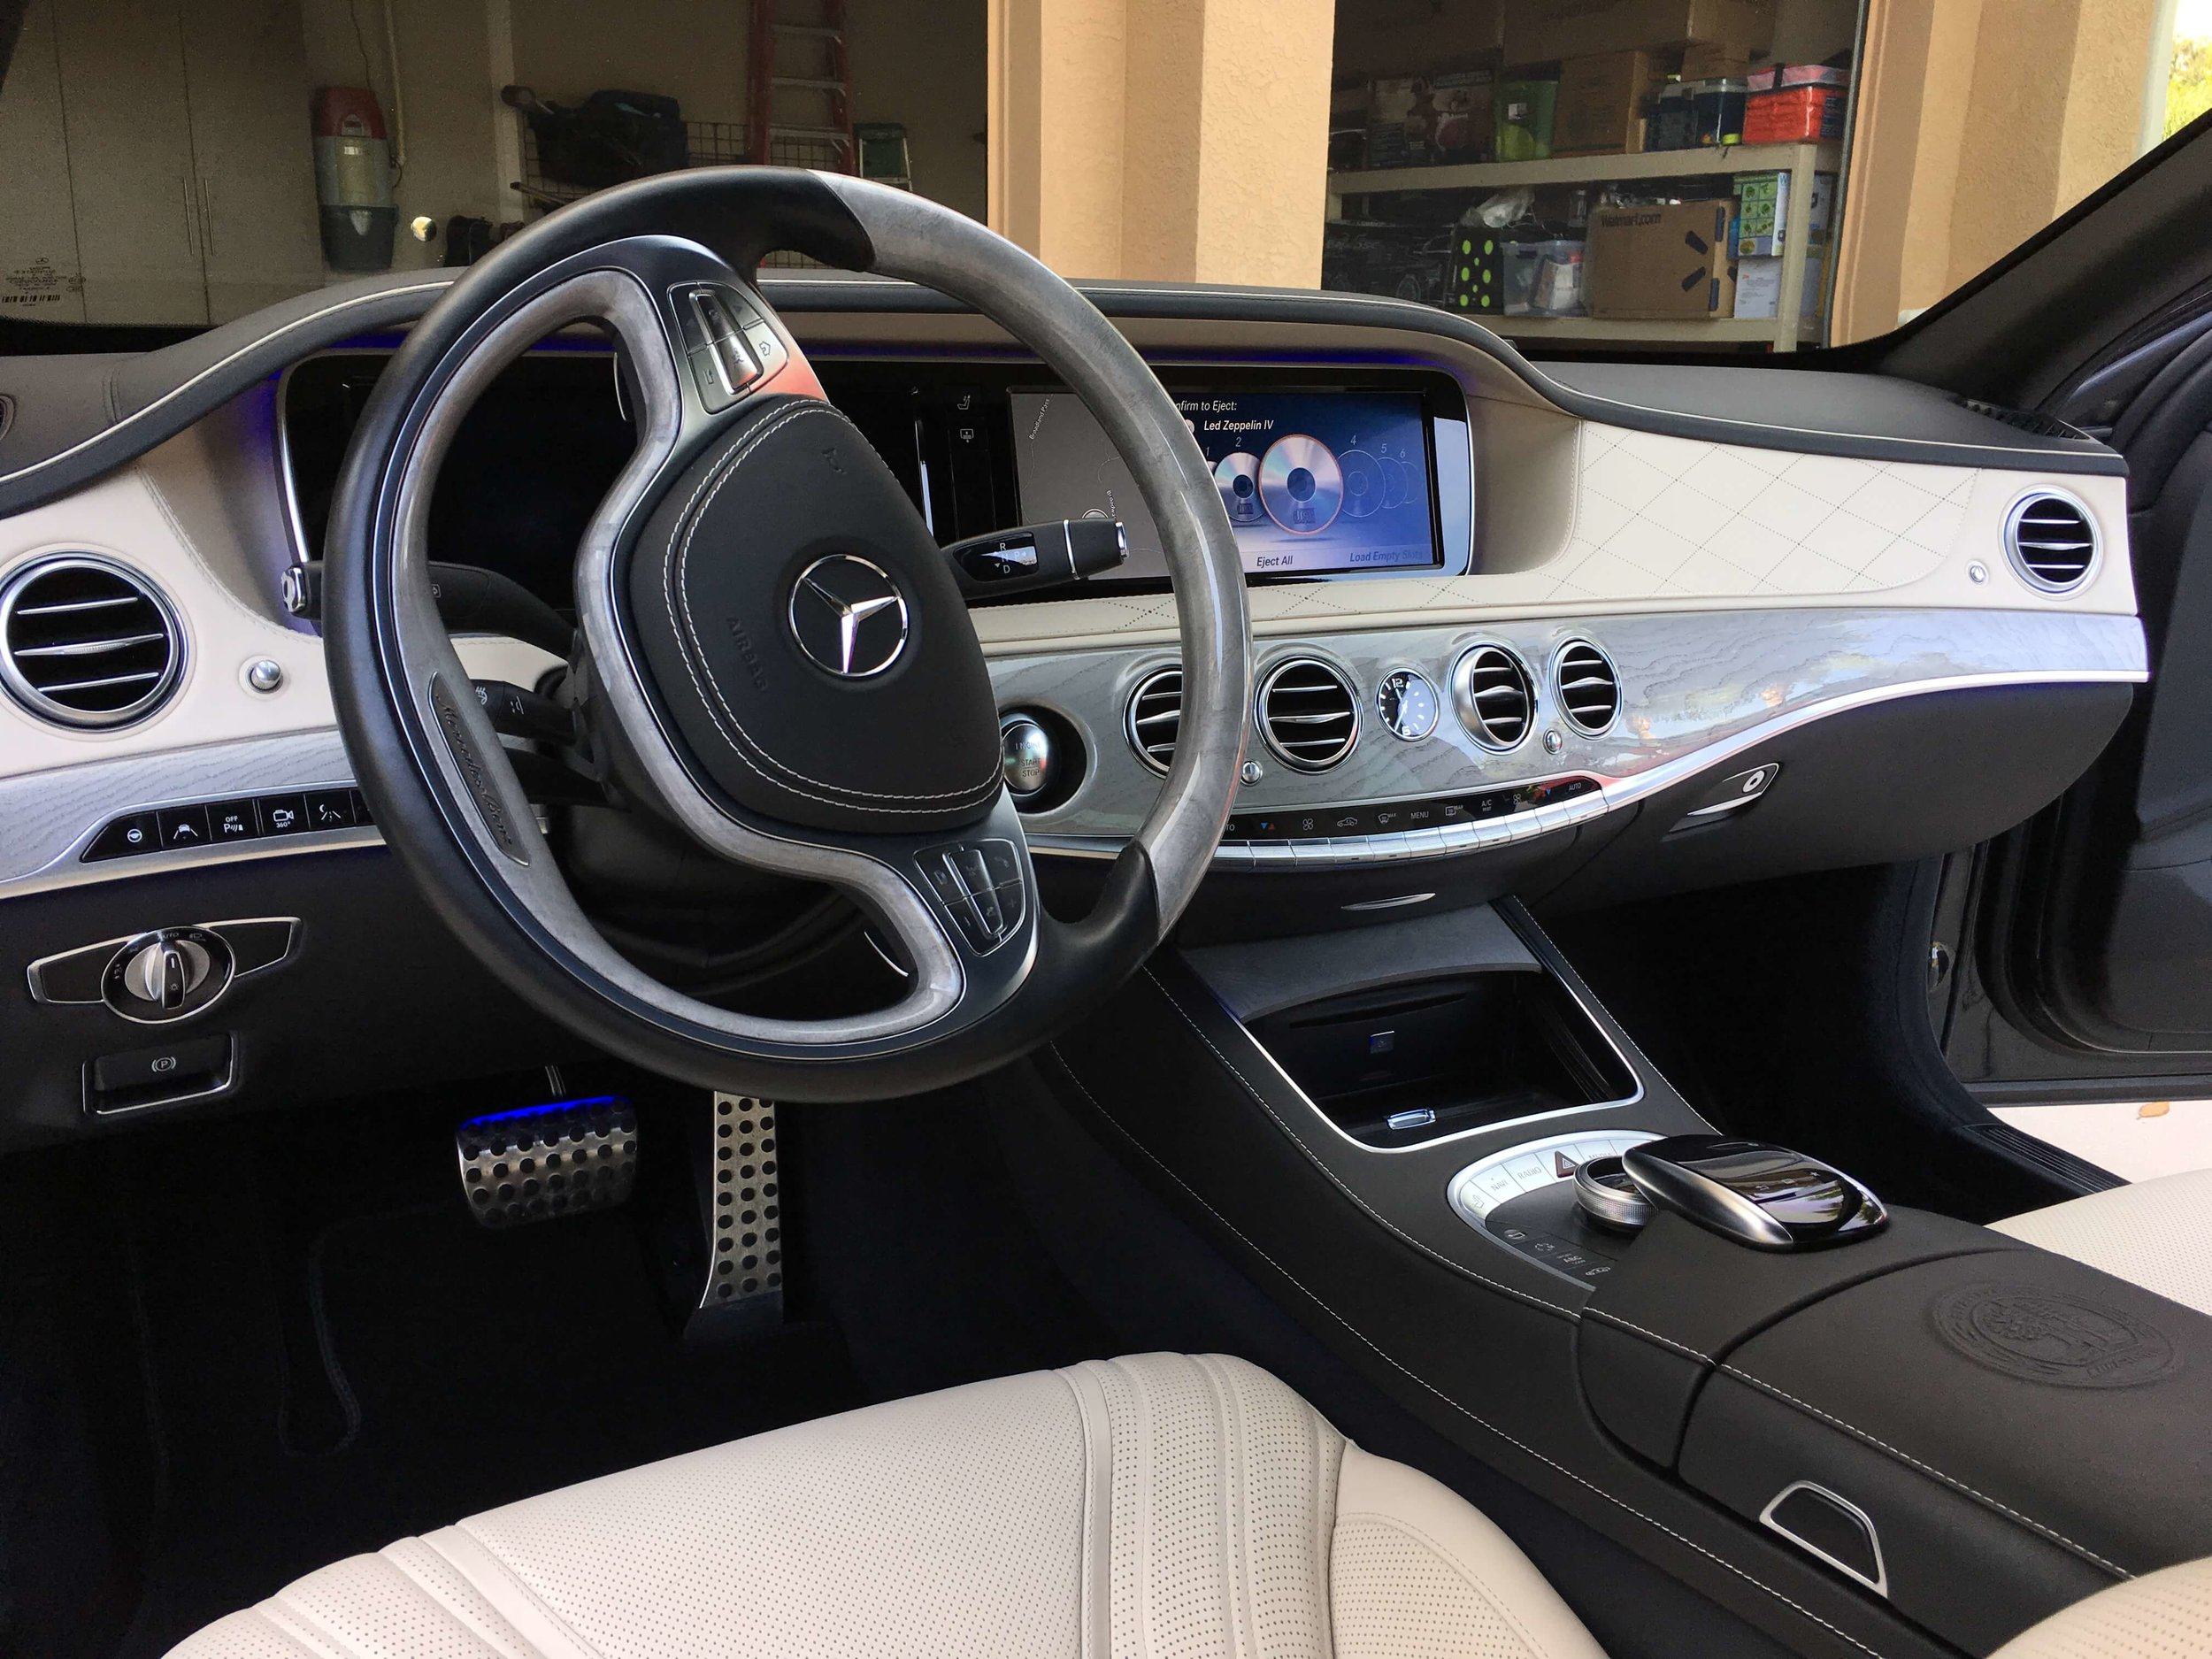 mercedes-brabus-s65-amg-cockpit-tampa-mobile-luxury-exotic-car-auto-detailing.JPG